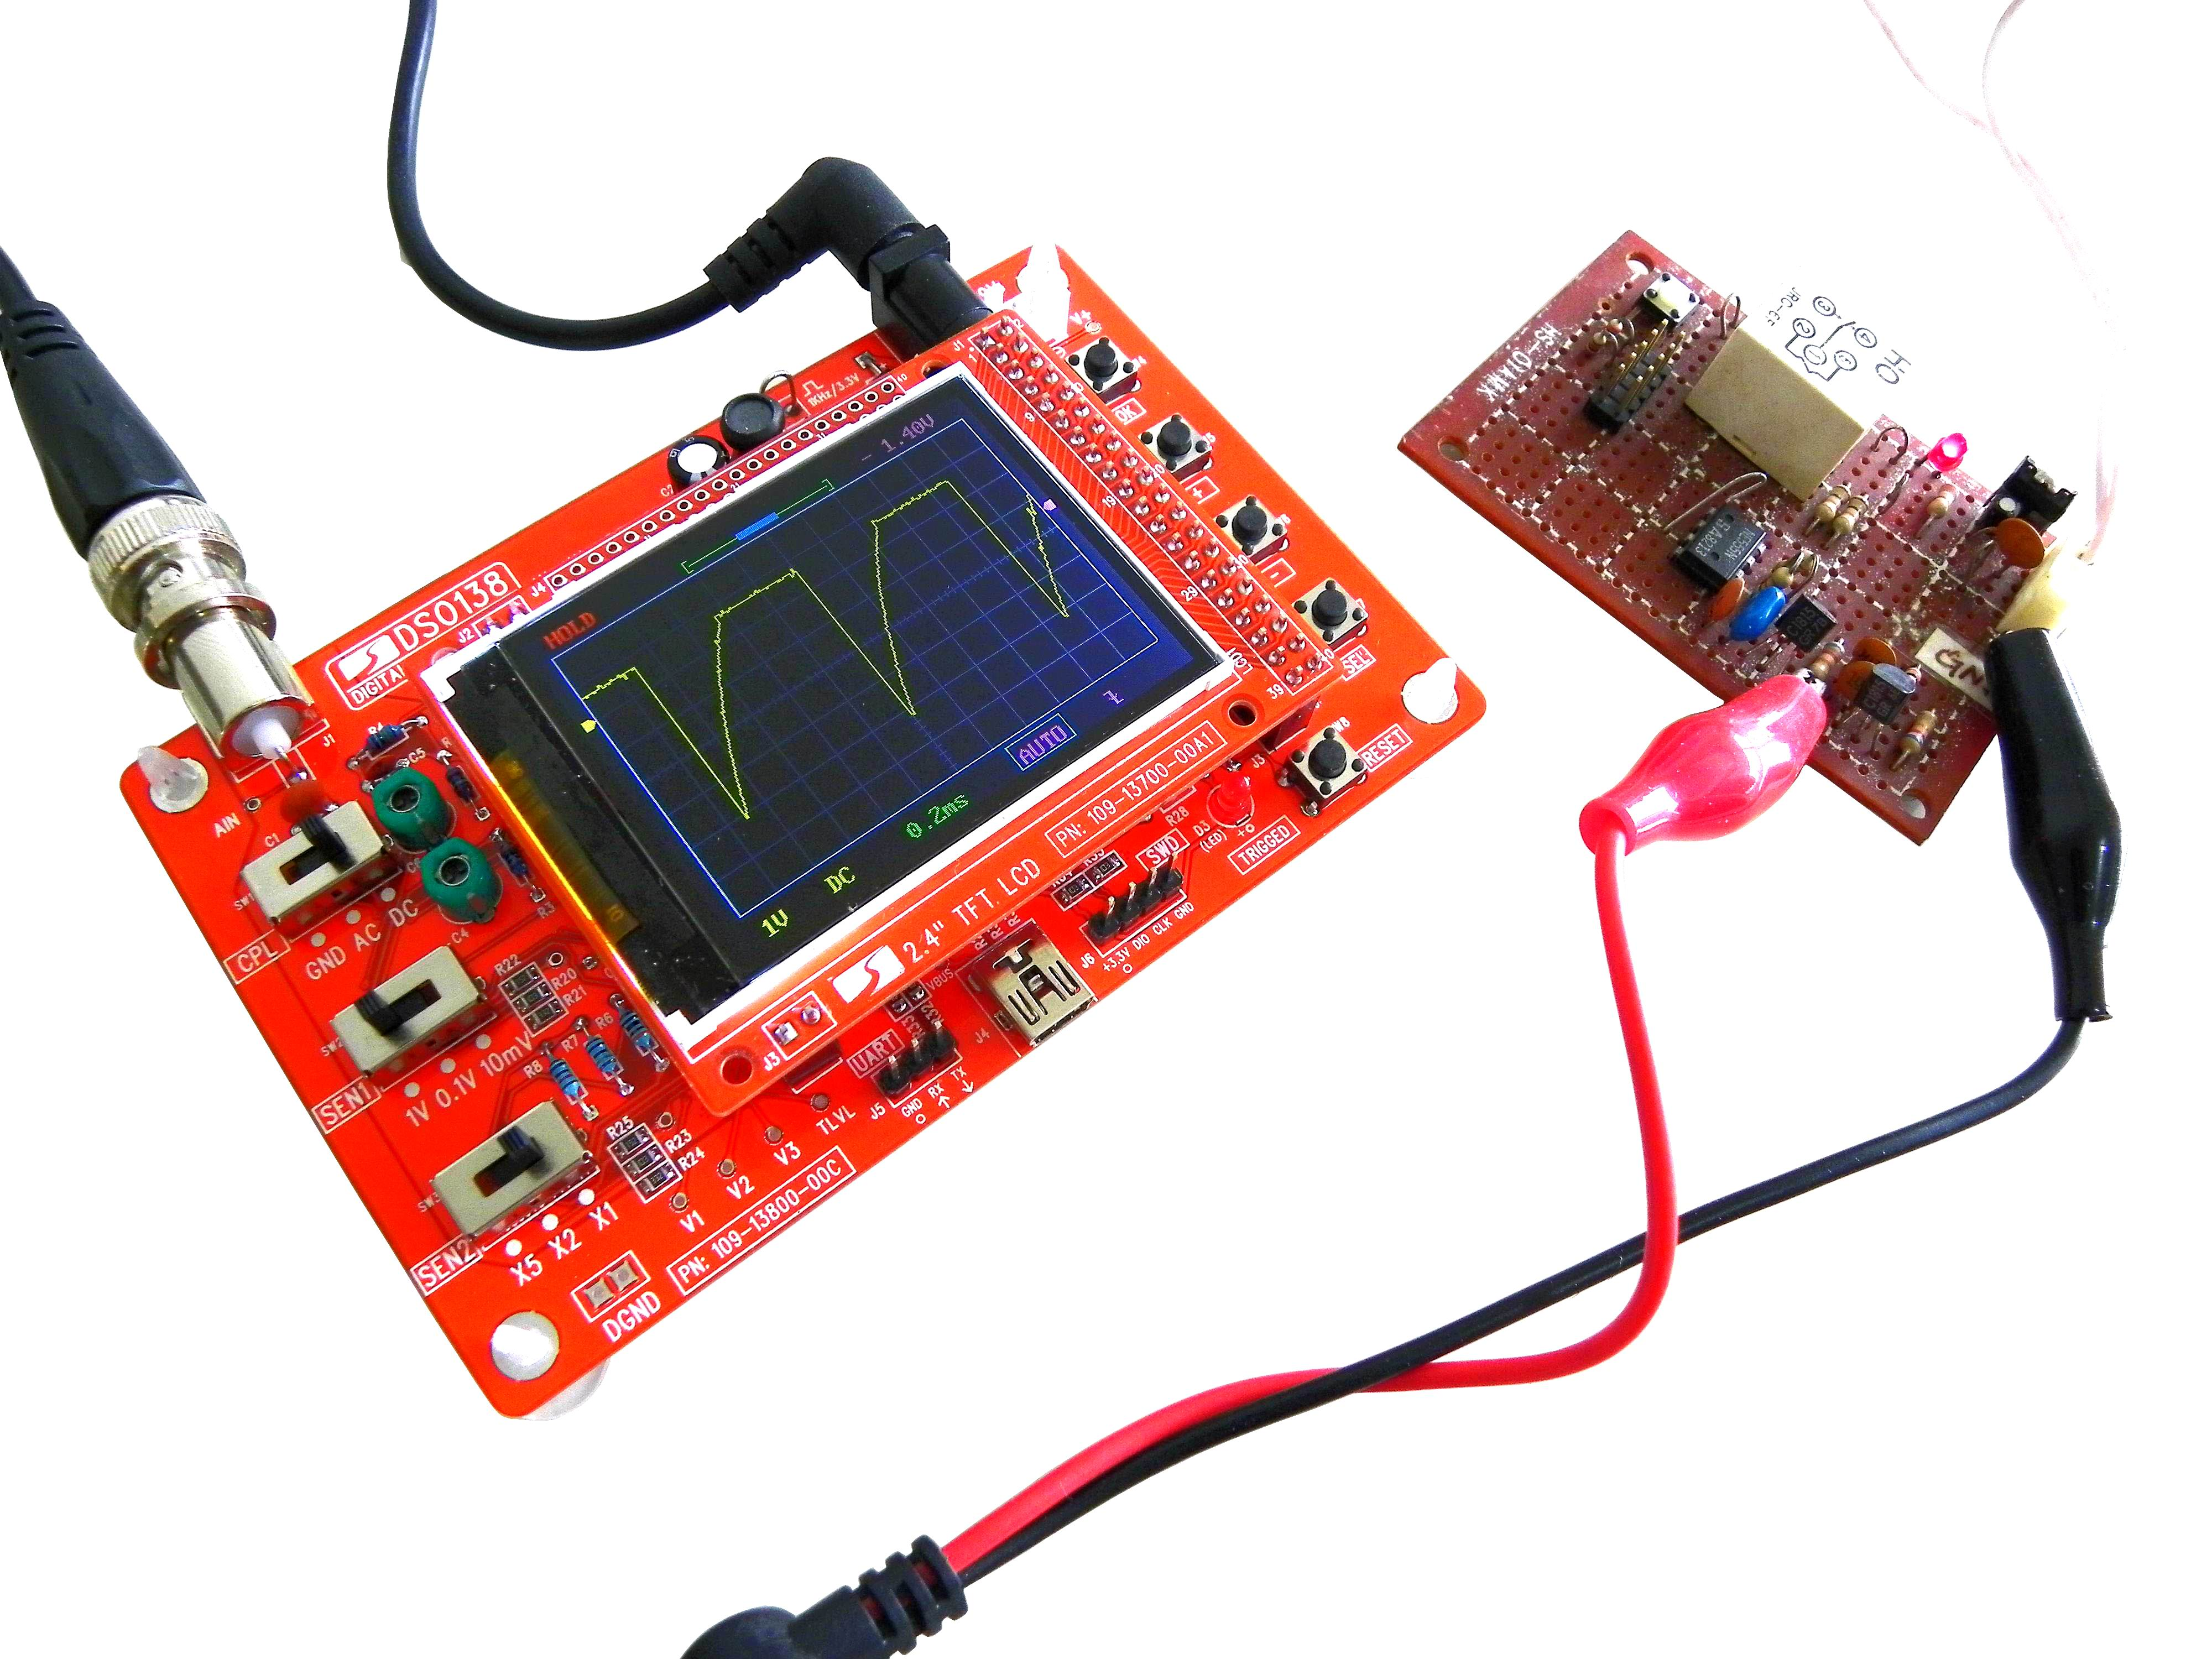 Wholesale DIY Handheld Oscilloscope (1 Channel, 200KHz, 50Vpk, 2.4 Inch Color Display, Open Source Code)